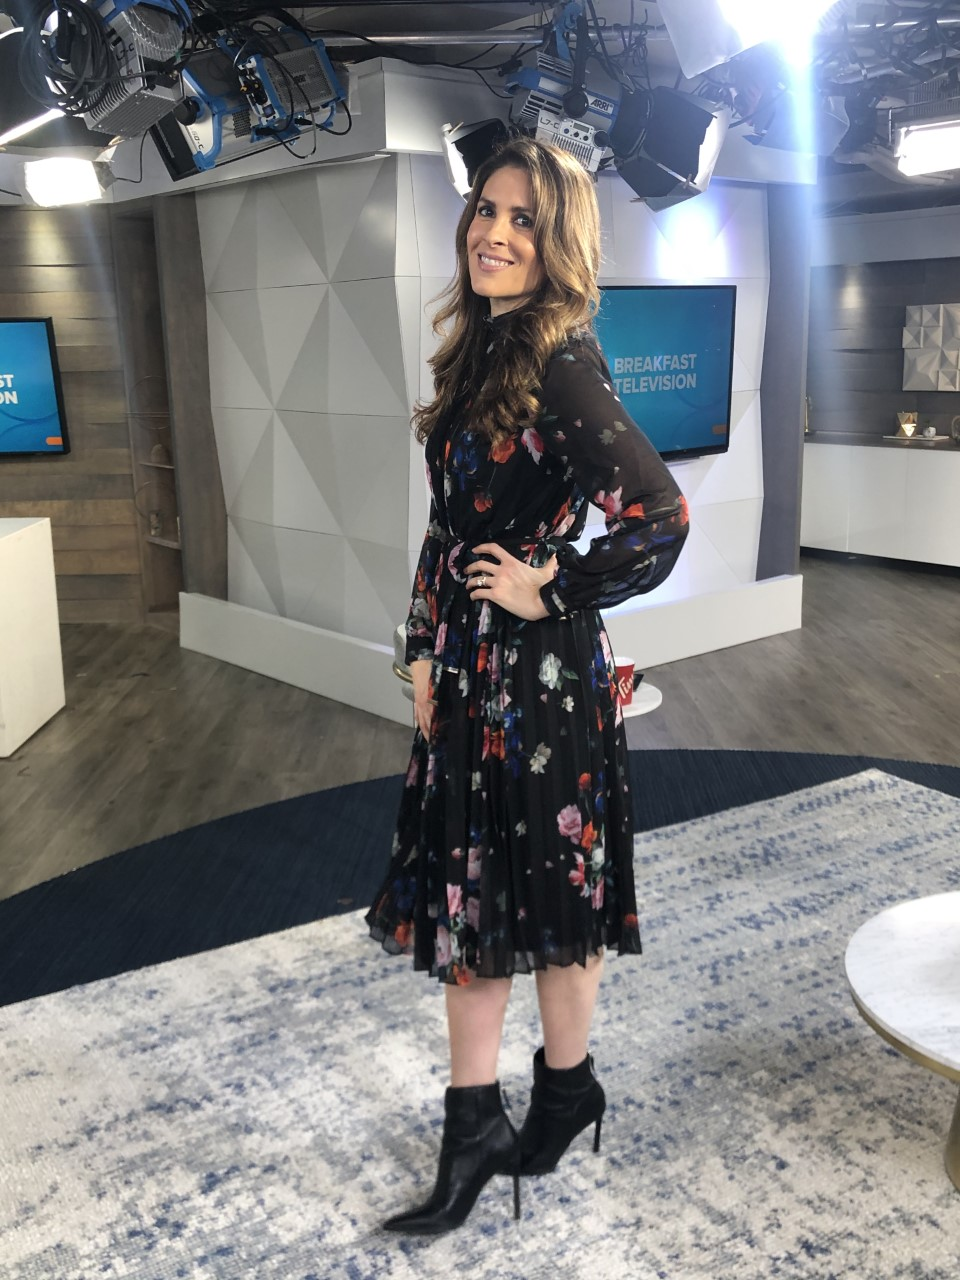 Dina wearing a black floral print dress with black booties